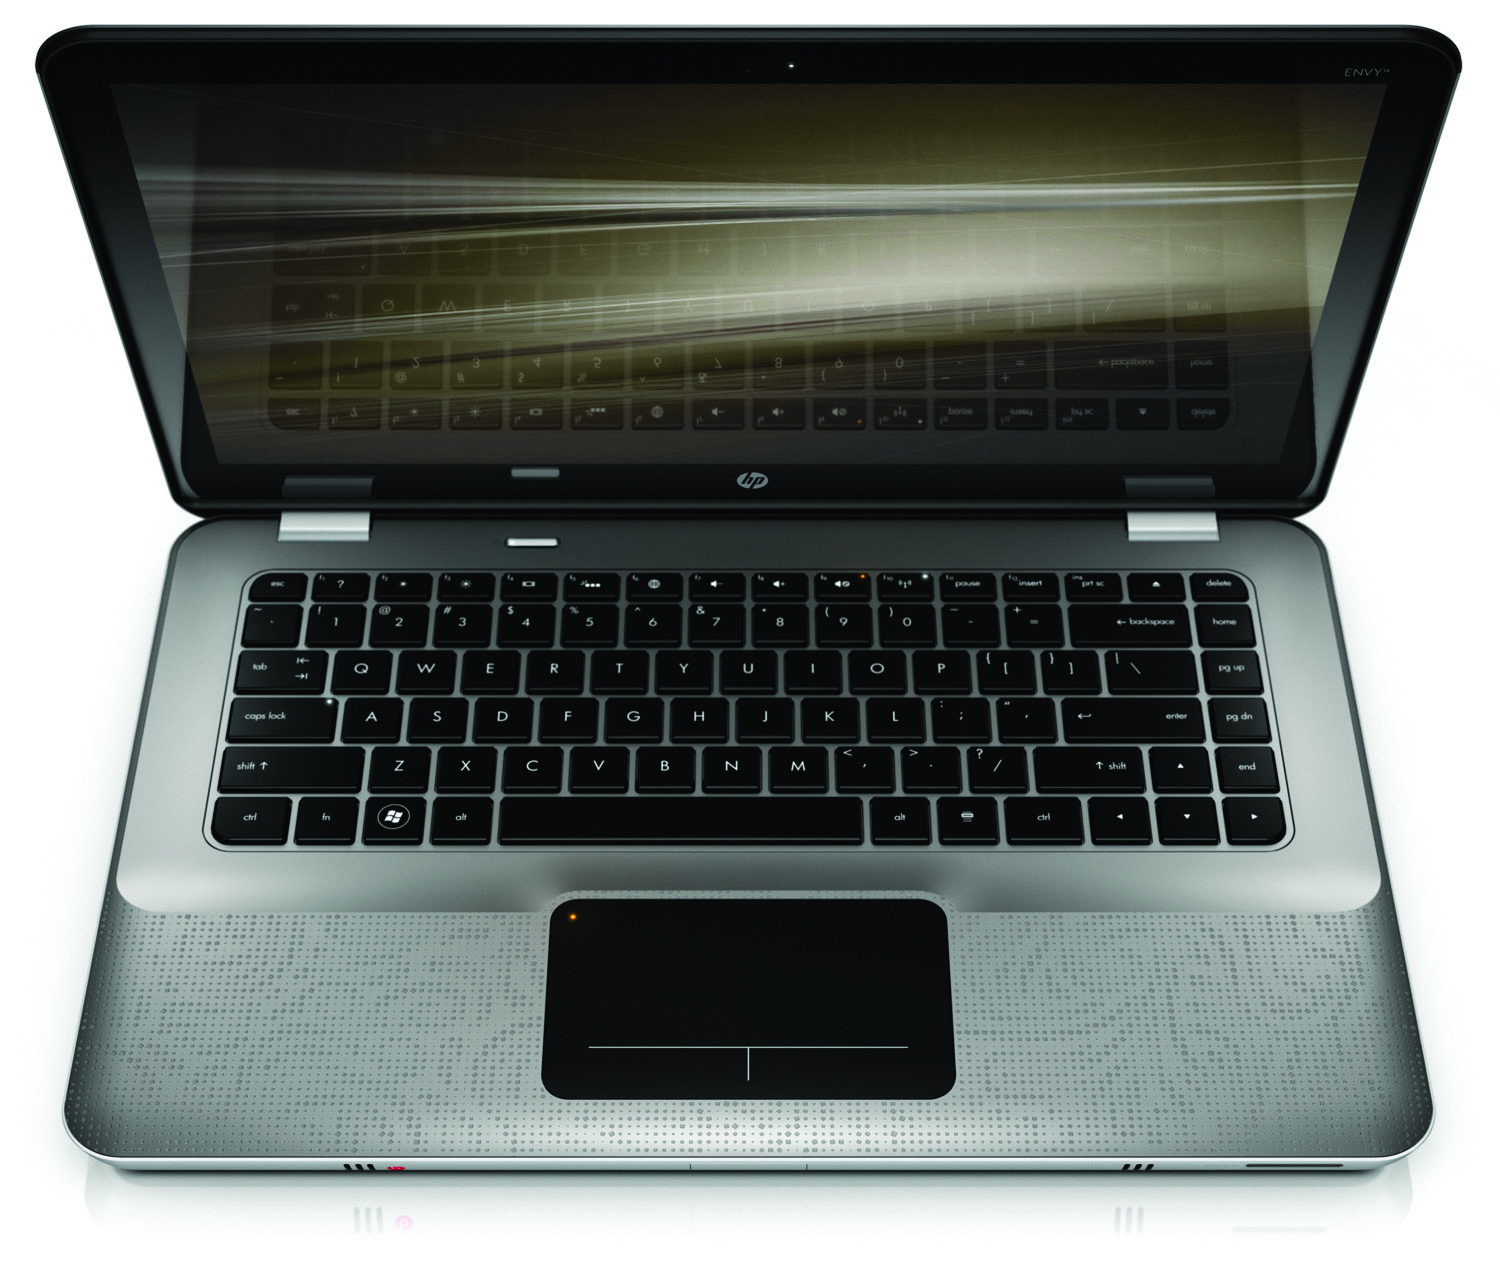 HP Envy 14-1210nr Notebook Intel WLAN Update